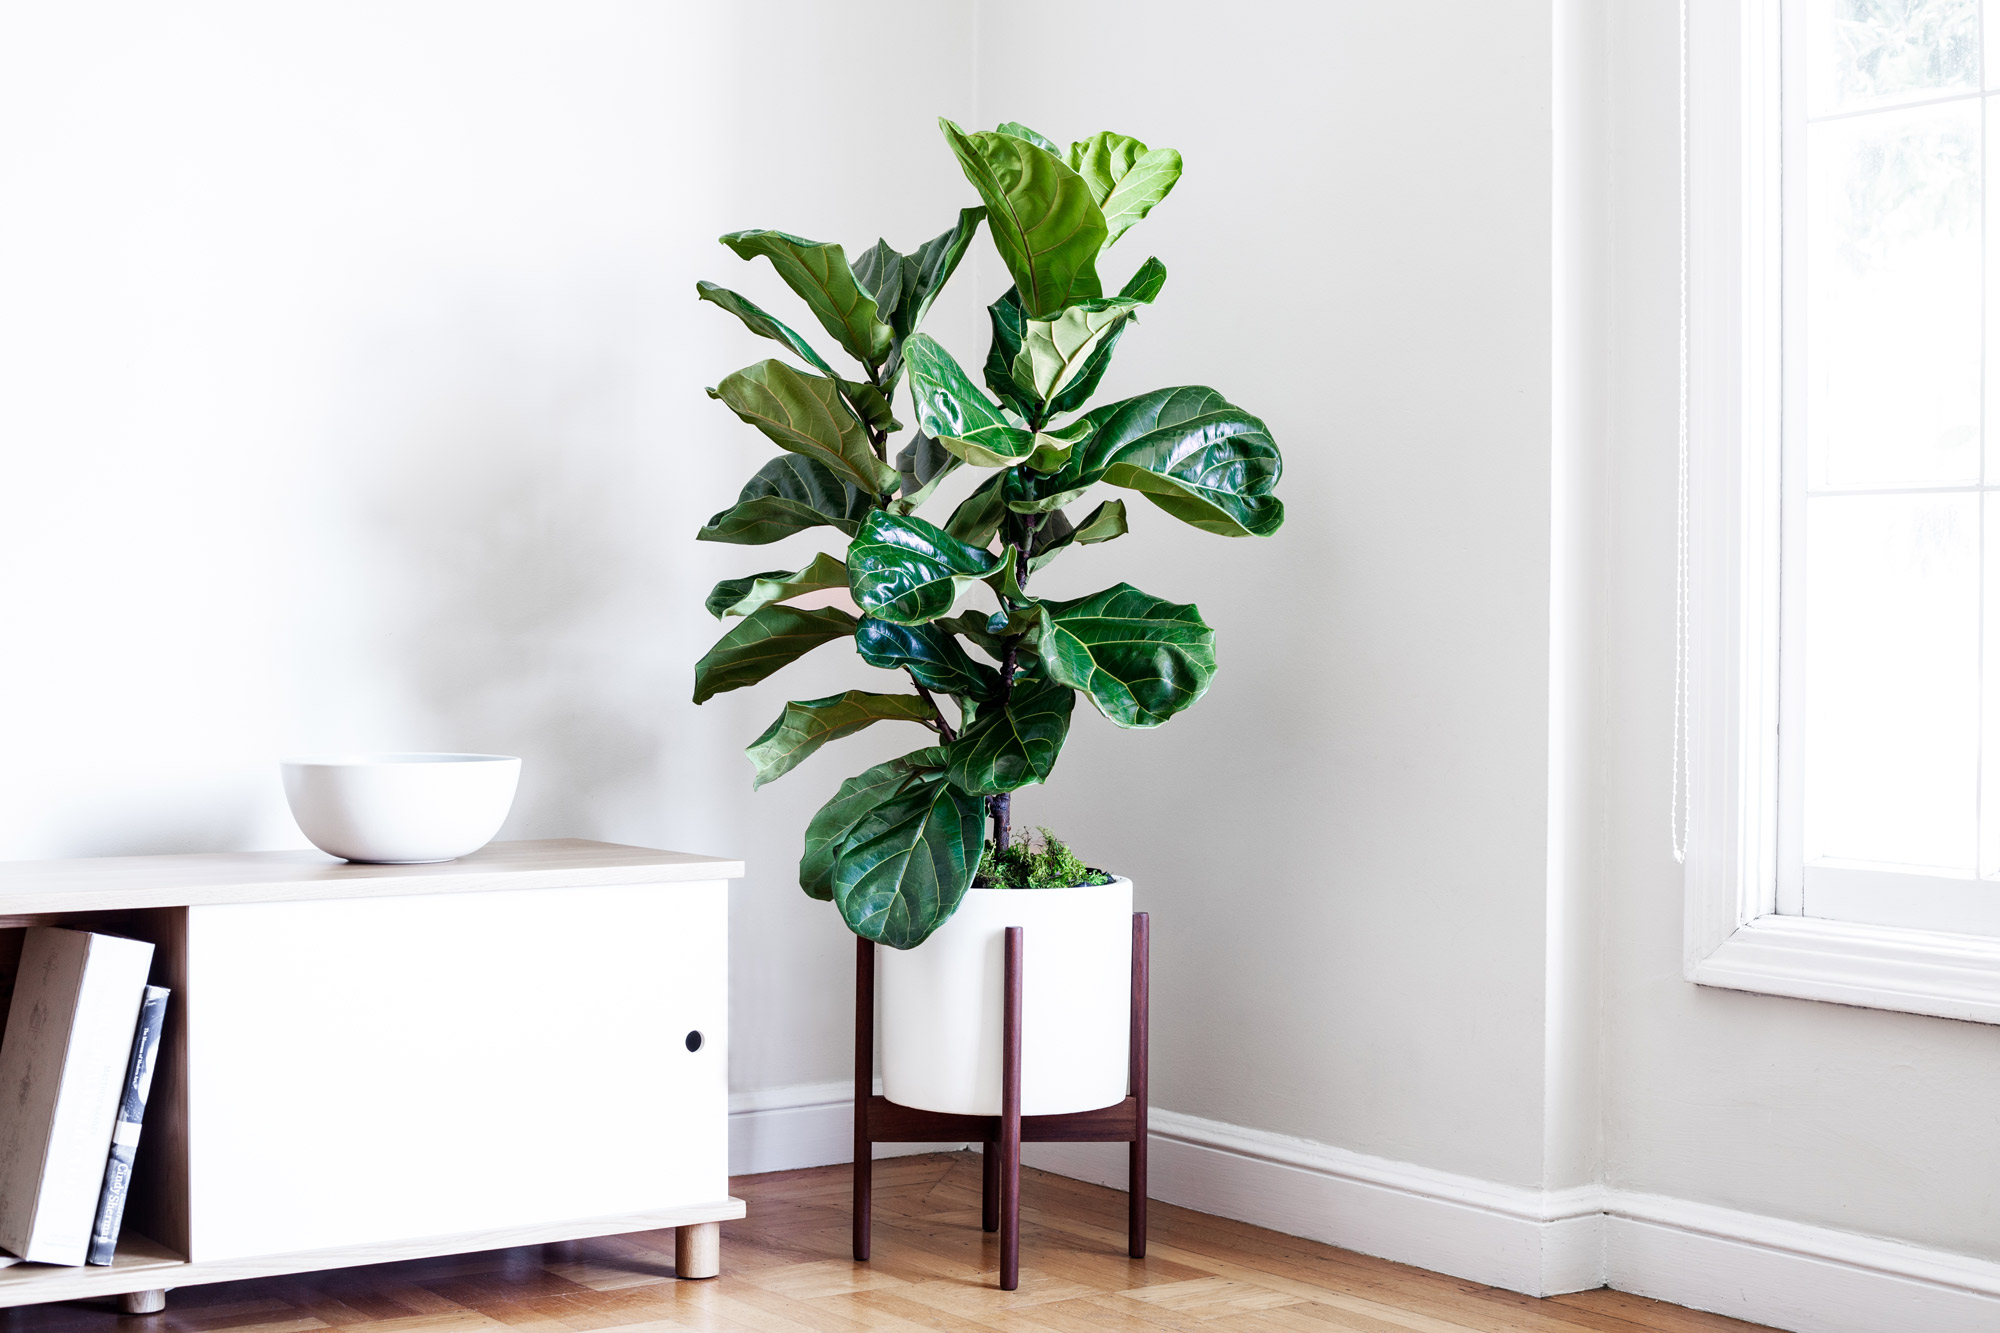 JUNIOR FIDDLE LEAF FIG BUSH - A lush and sculptural plant with elegant violin-shaped leaves, the Junior Fiddle Leaf Fig Bush makes for a dramatic addition to any indoor space – truly a must-have for all who appreciate style and greenery.3-4ft tall plant with ceramic pot and reclaimed wood stand: $299